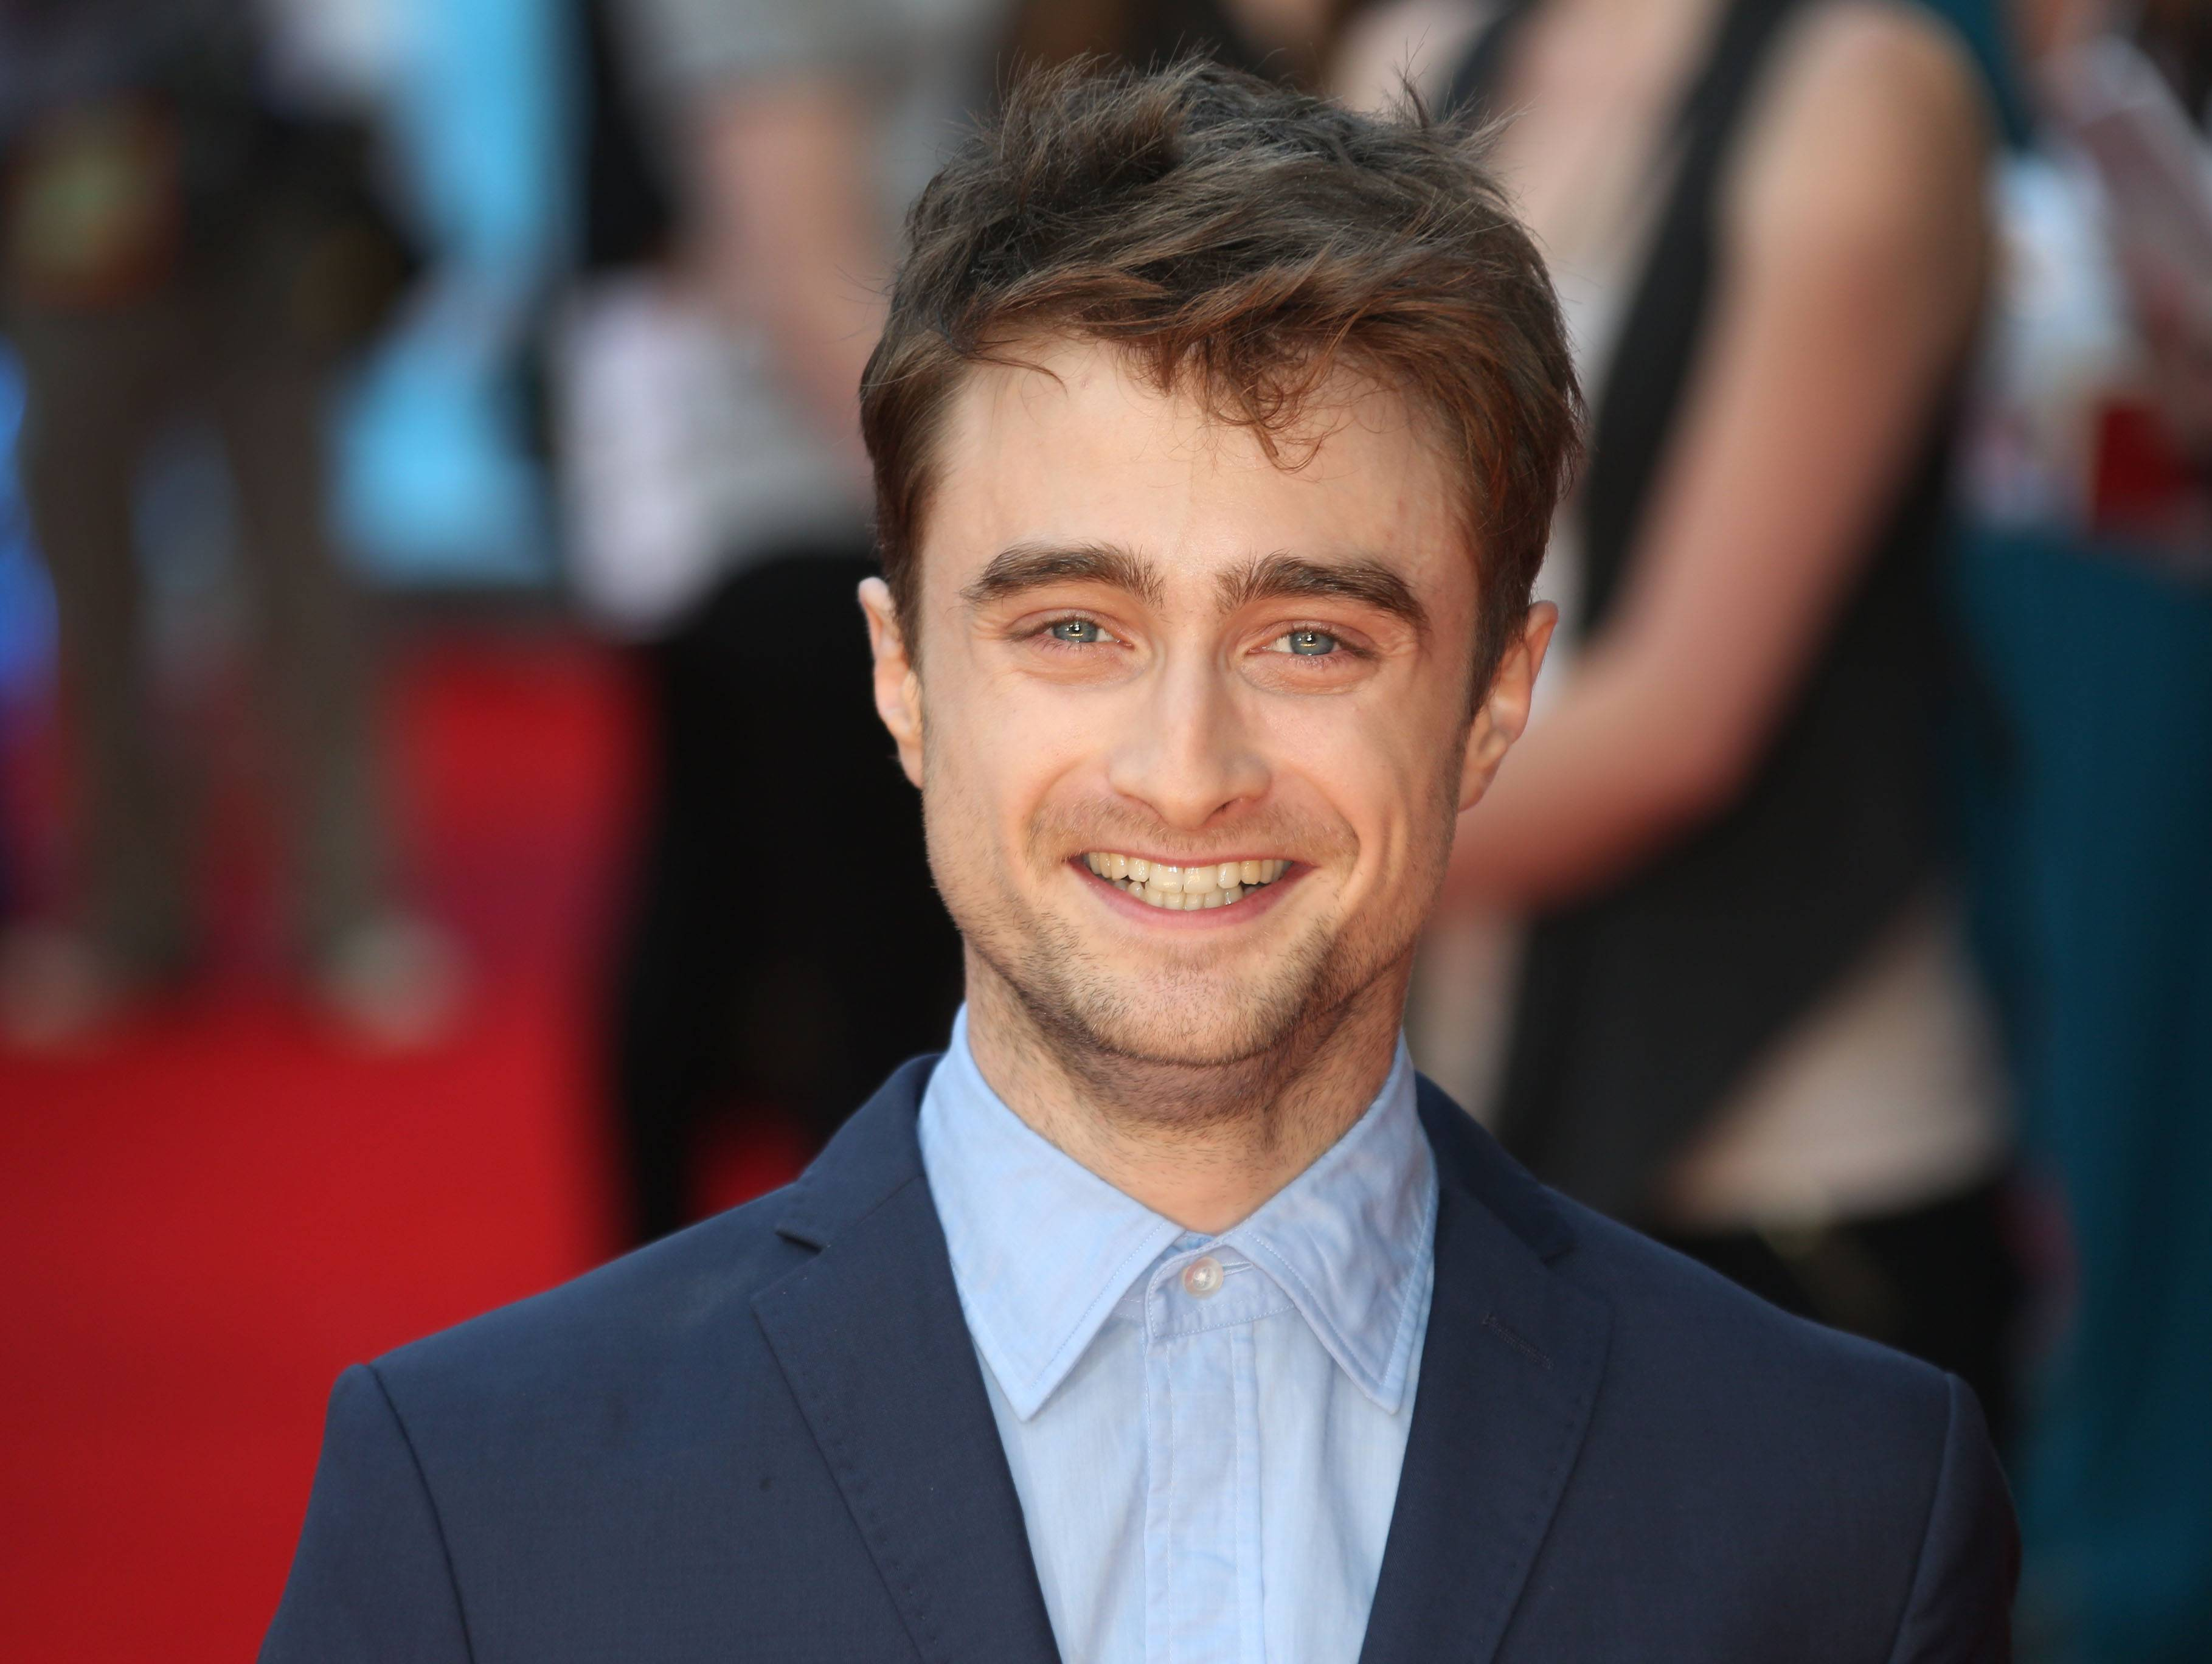 British actor Daniel Radcliffe doesn't see what all the fuss is about when it comes to interest in actors.